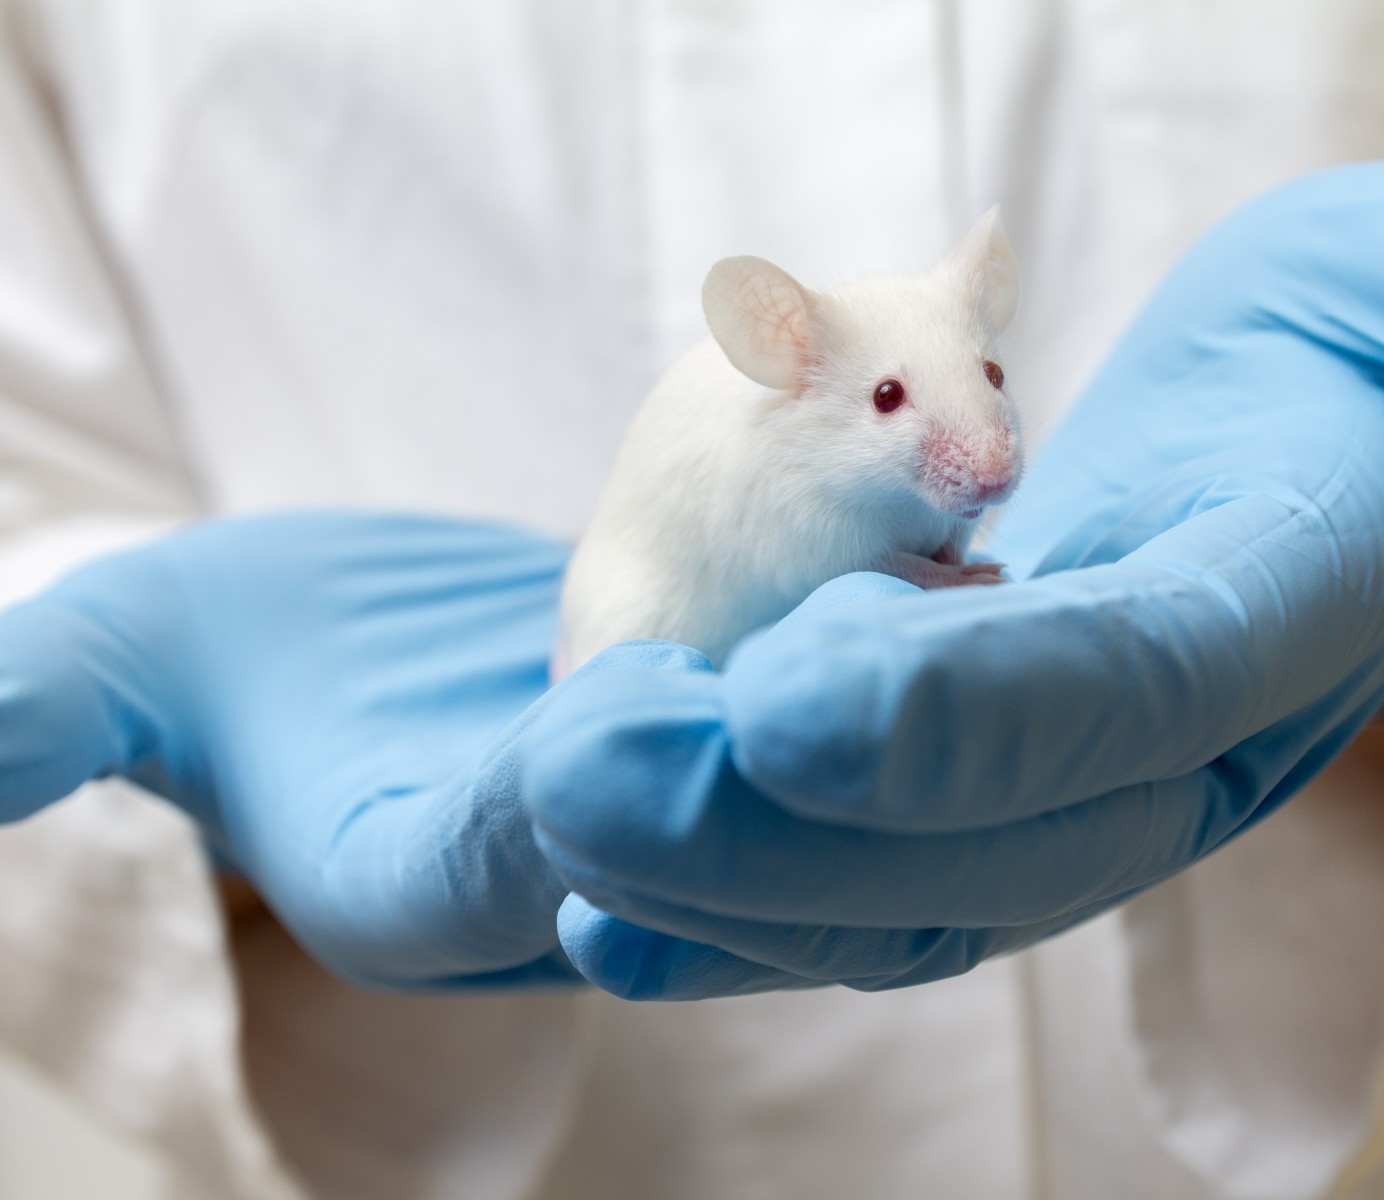 Researchers Develop New Mice Models for SMA Types 2 and 3